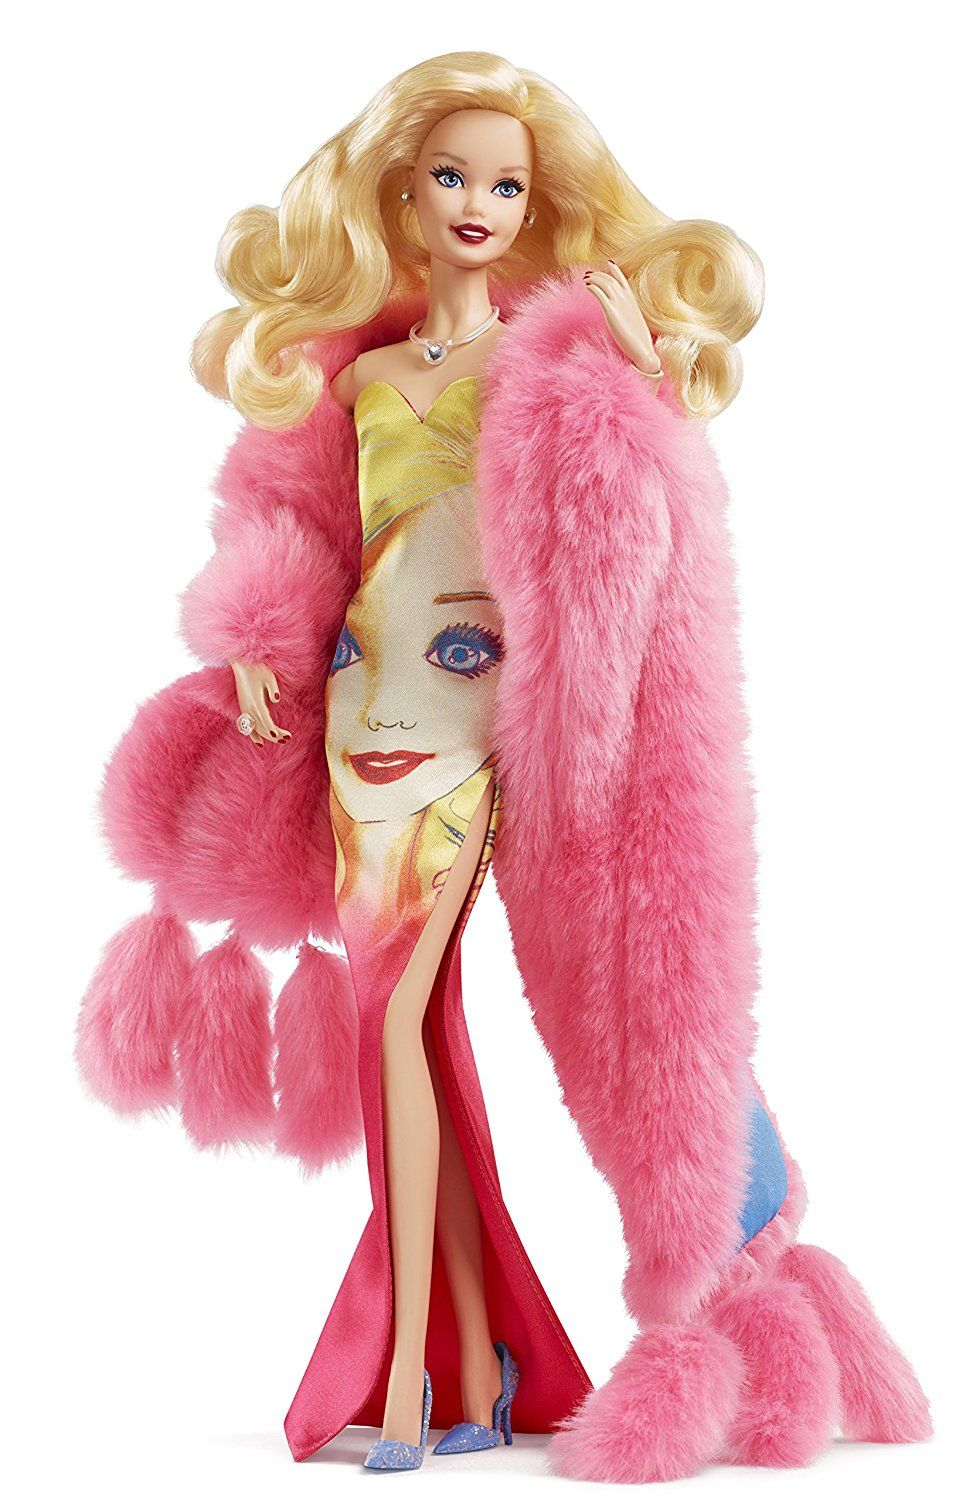 Barbie DWF57 - Andy Warhol Doll Collection